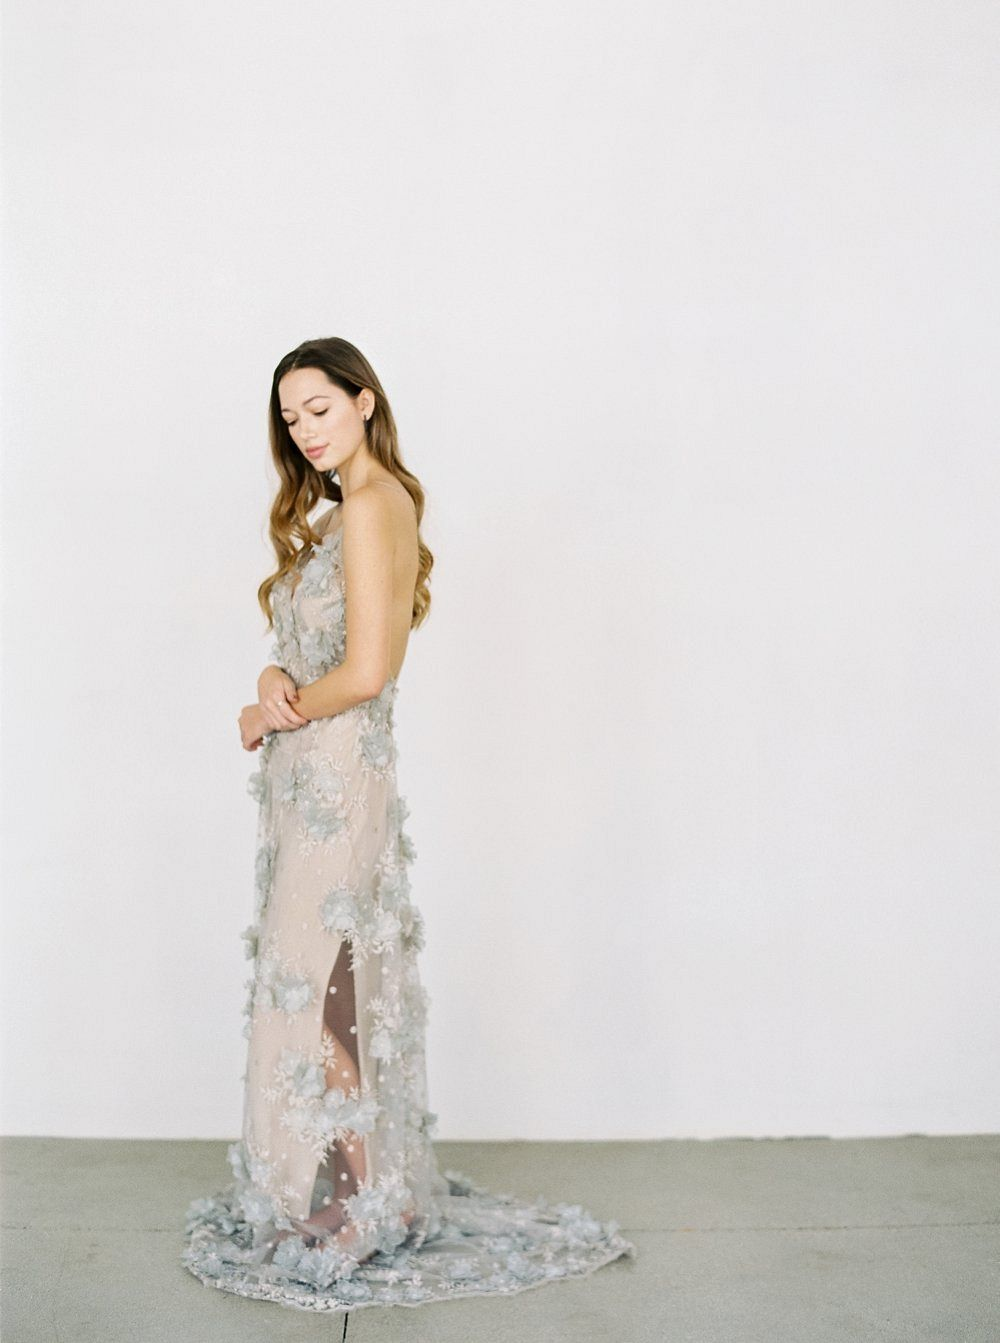 Handmade Wedding Gowns With Floral Applique By Gossamer